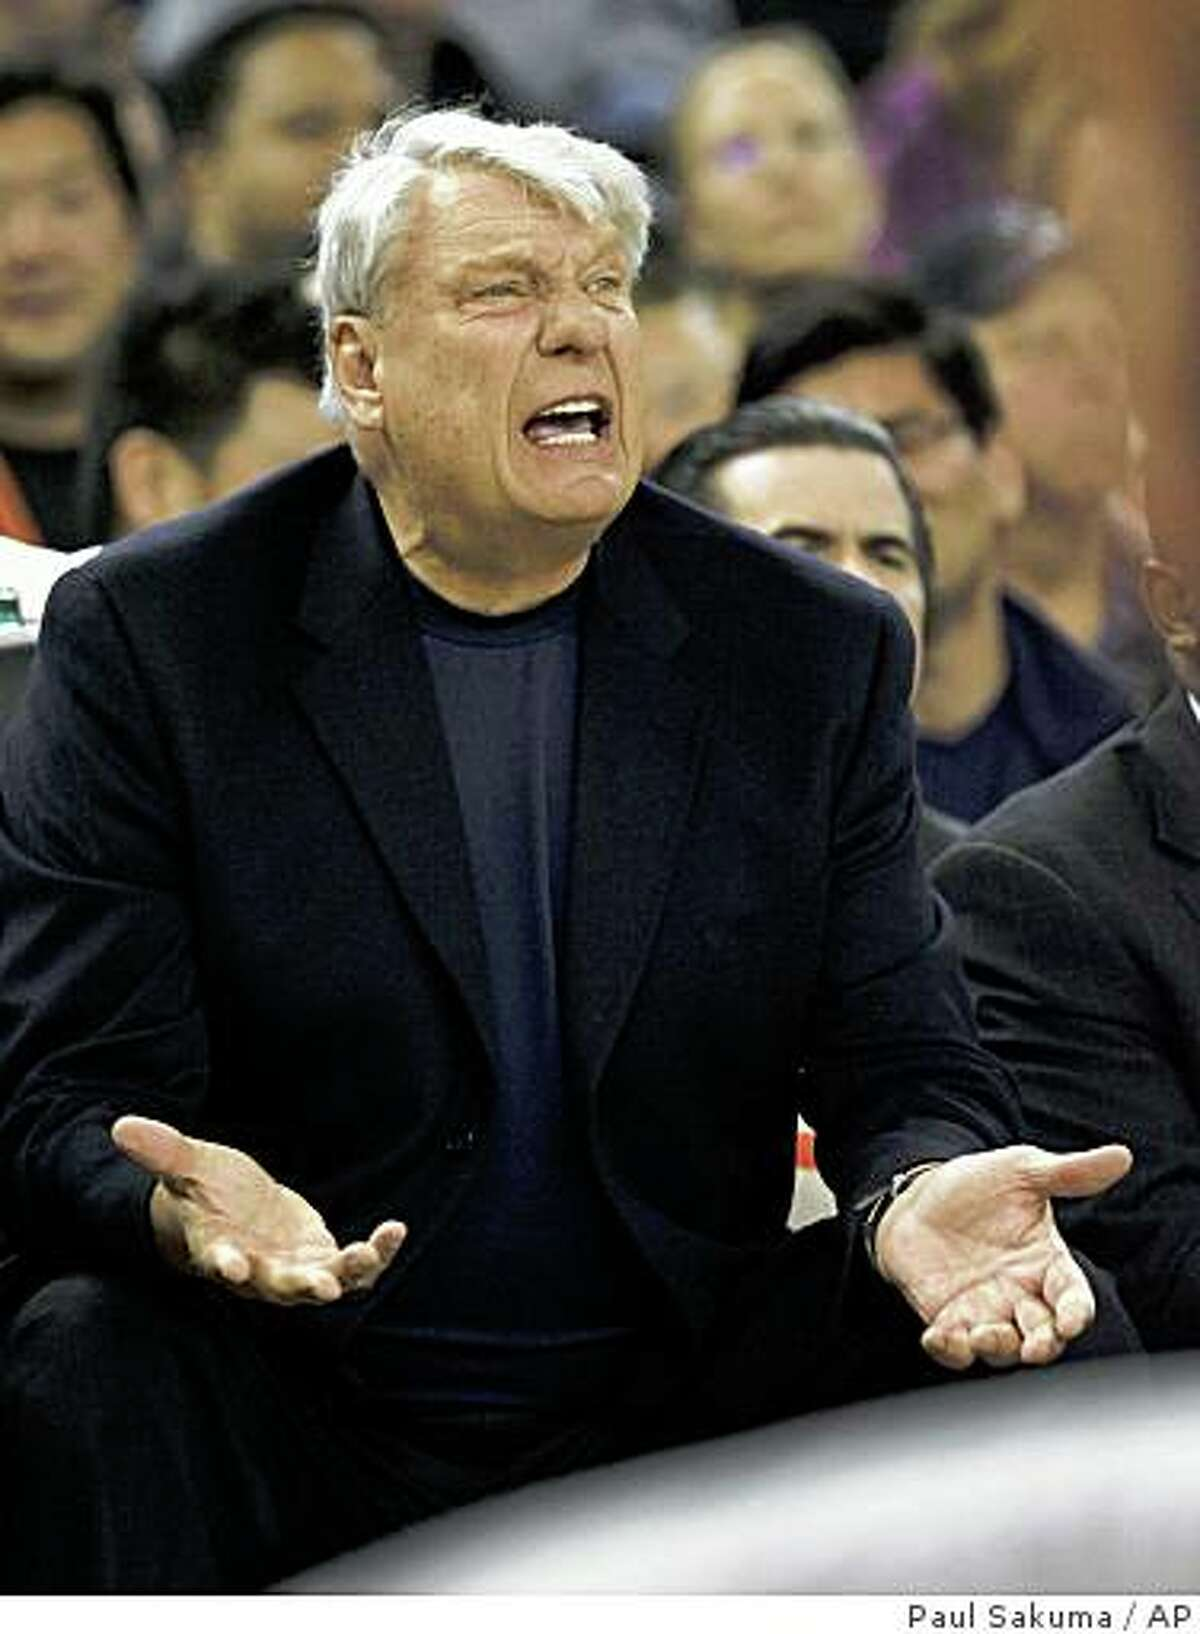 Golden State Warriors head coach Don Nelson argues with referees during game against the San Antonio Spurs in the first quarter.